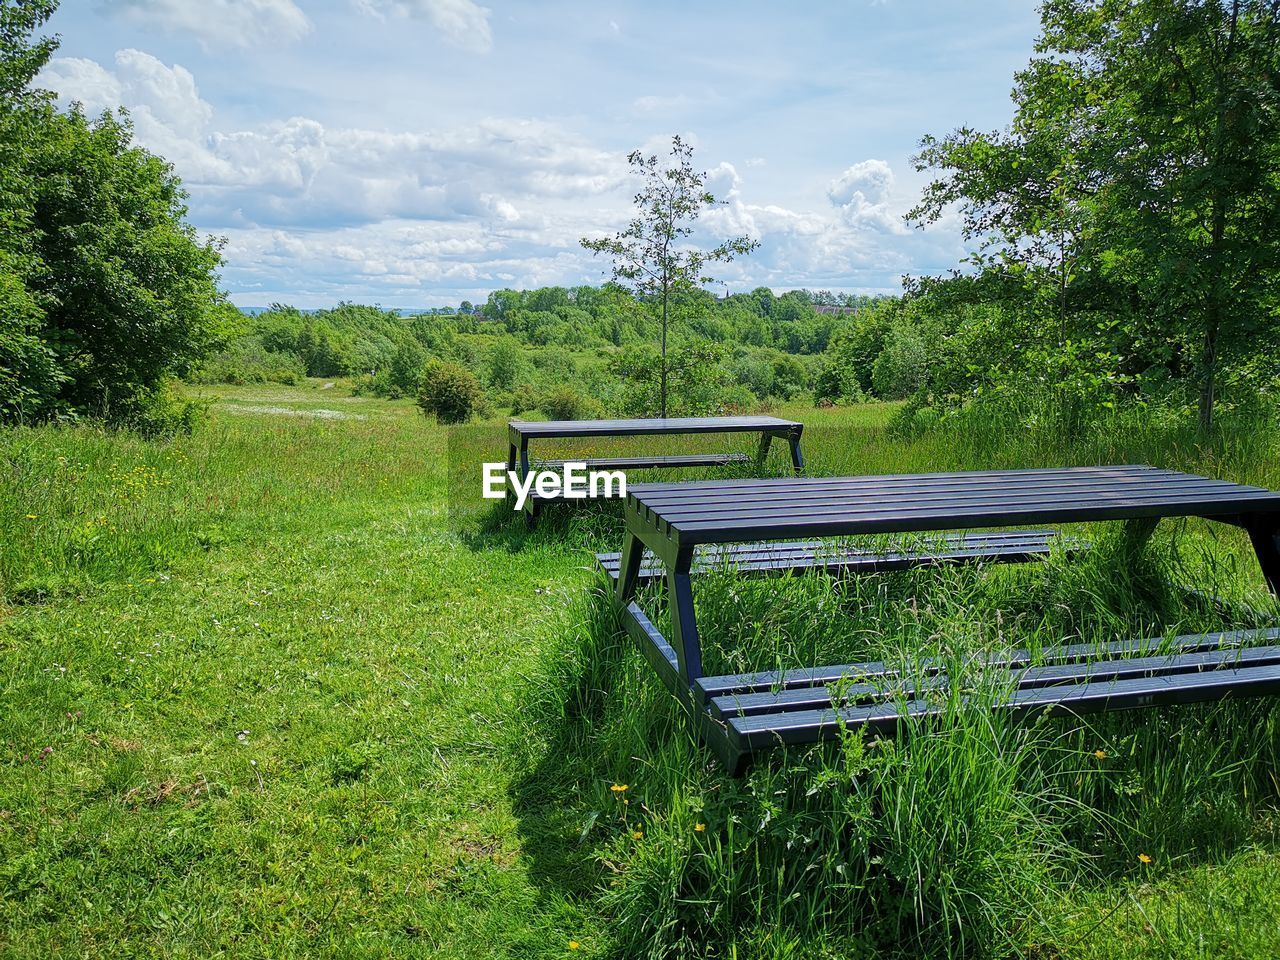 plant, green color, tree, land, grass, nature, growth, field, sky, day, beauty in nature, bench, seat, no people, non-urban scene, empty, landscape, outdoors, cloud - sky, scenics - nature, park bench